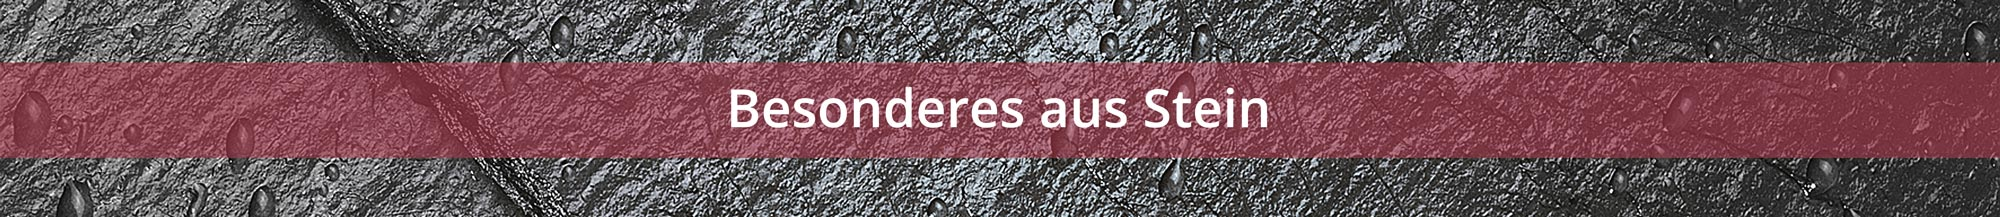 strauss_schiefer_banner_red_black_besonderes